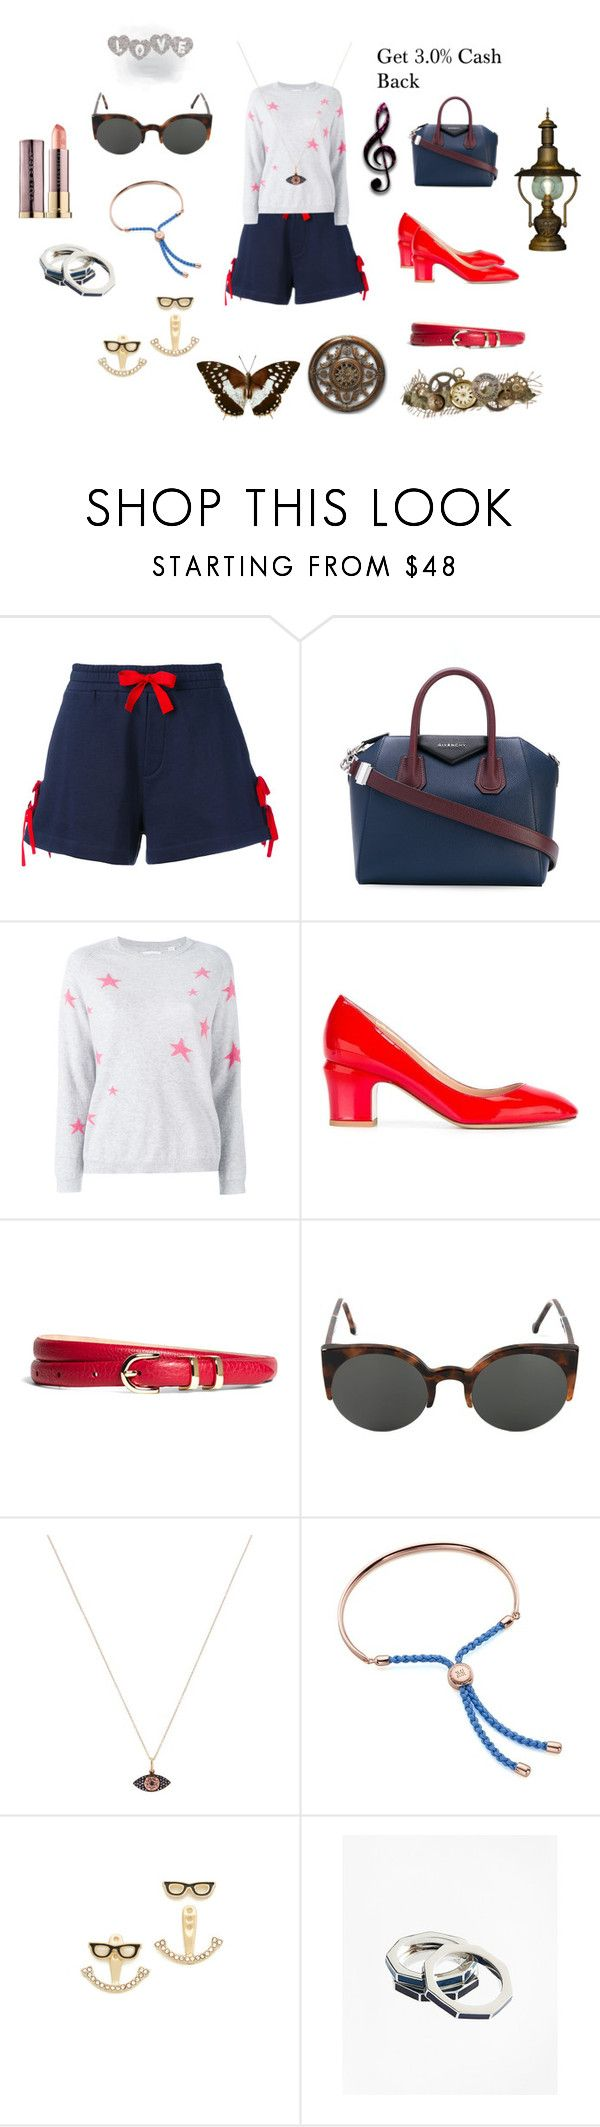 """Dress yourself"" by jamuna-kaalla ❤ liked on Polyvore featuring Givenchy, Chinti and Parker, Valentino, Brooks Brothers, RetroSuperFuture, Ileana Makri, Monica Vinader, Kate Spade and vintage"